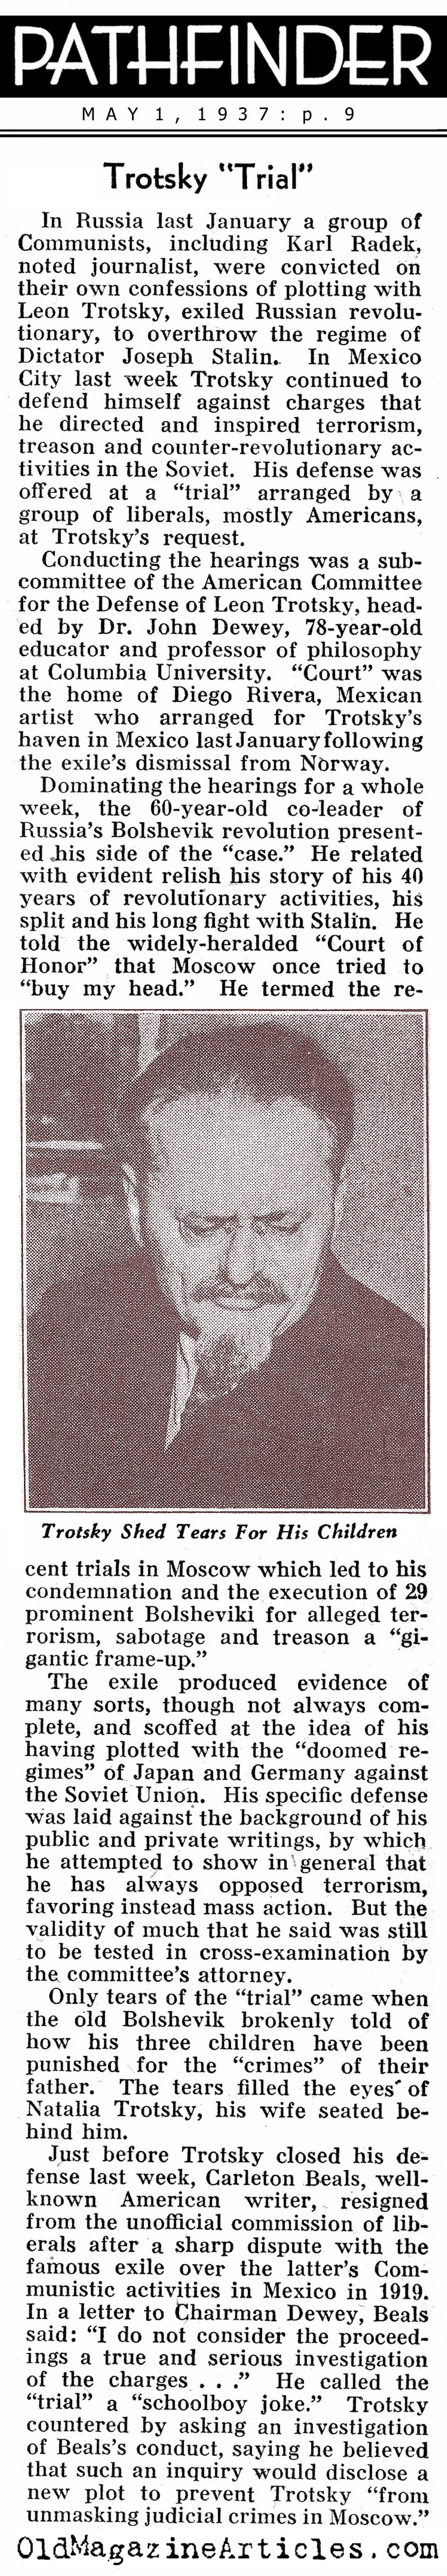 Stalin Puts Trotsky ''On Trial'' (Pathfinder Magazine, 1937)